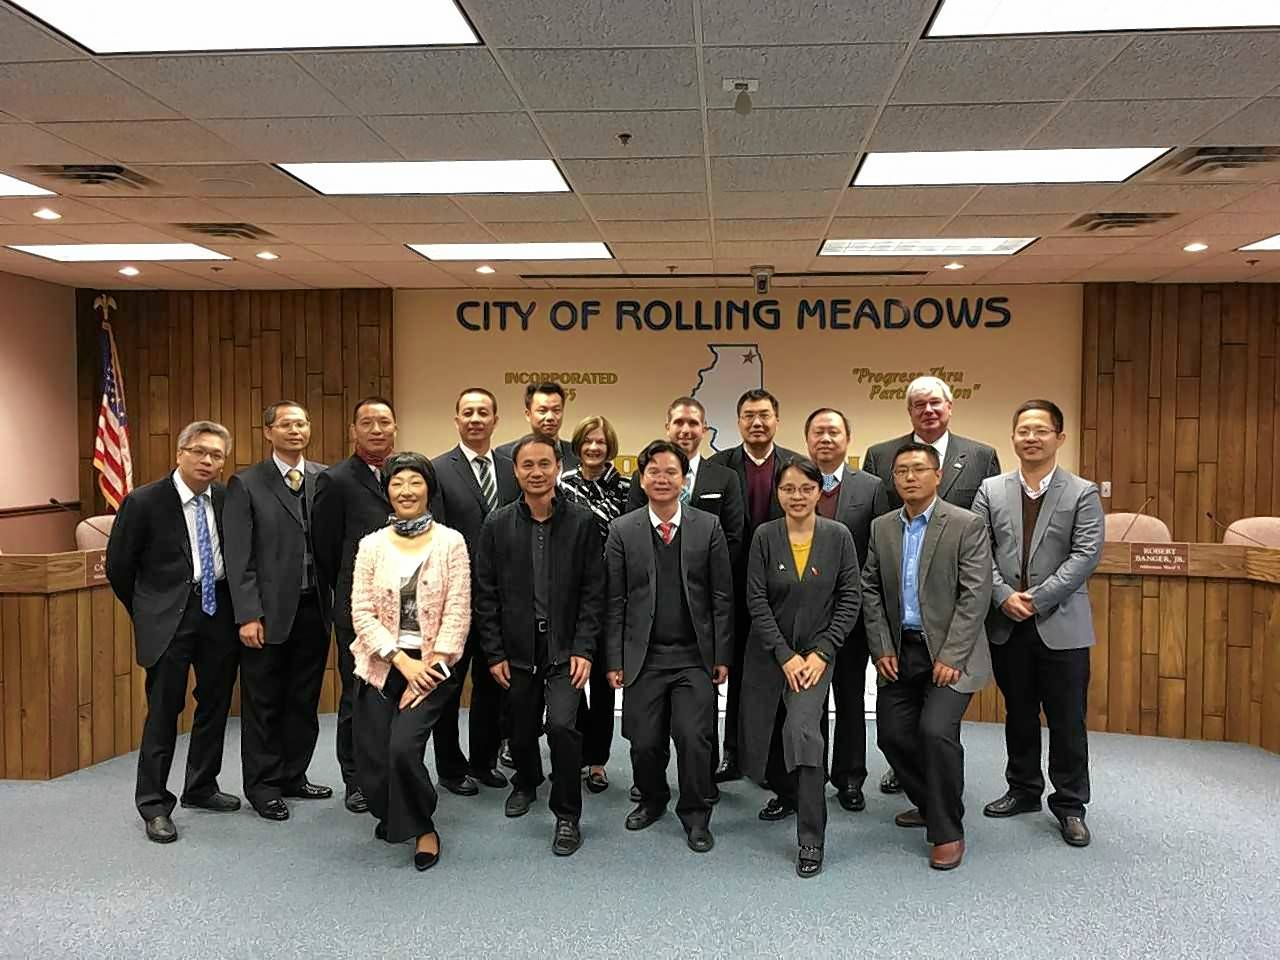 A Chinese delegation of 14 governmental officials from Zhuhai Innovation/High Tech Industrial Development Zone visited Rolling Meadows.